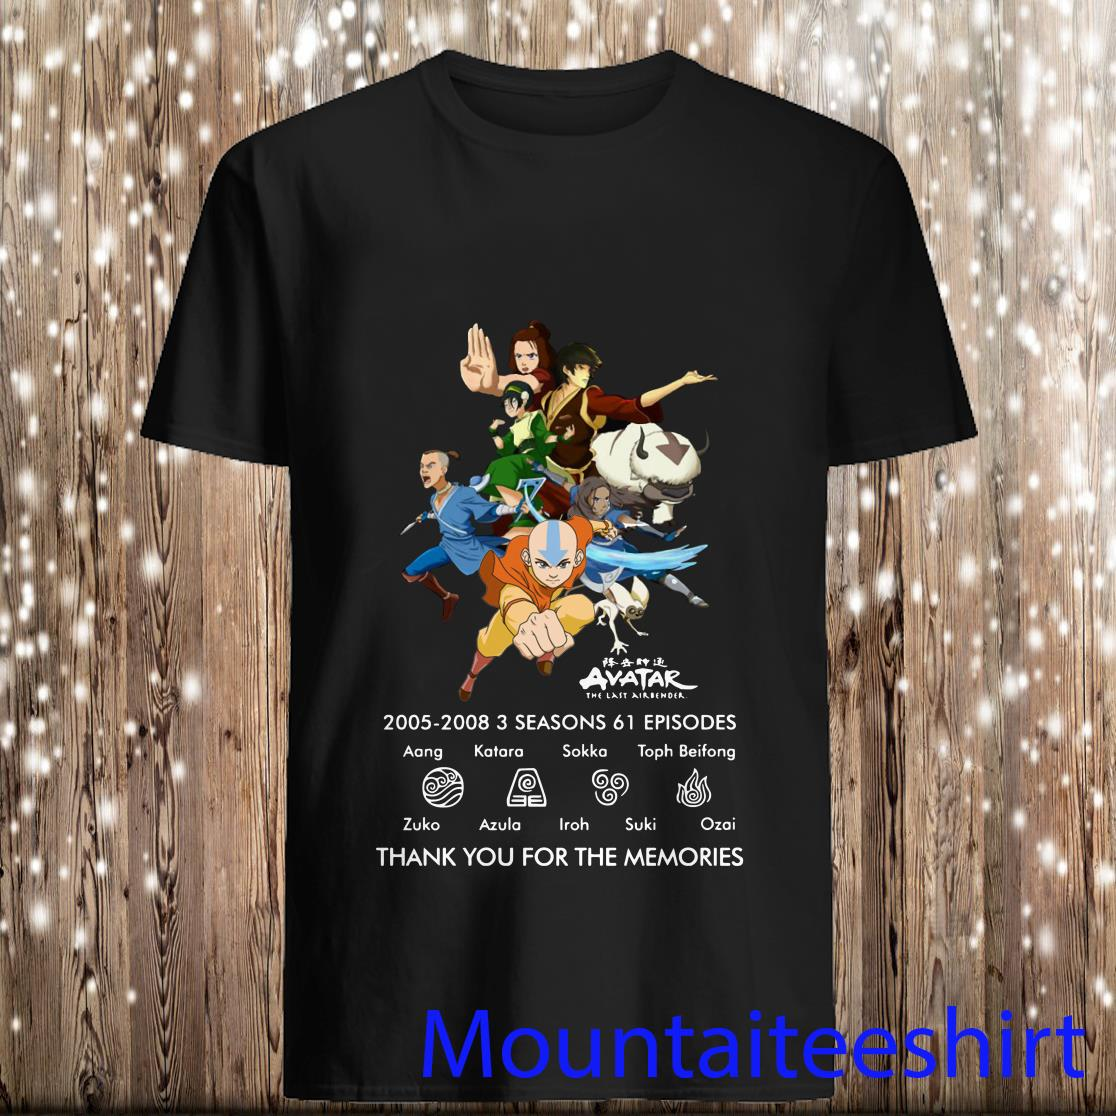 Avatar The Last Airbender 2005-2008 3 Seasons 61 Episodes Thank You for The Memories Shirt